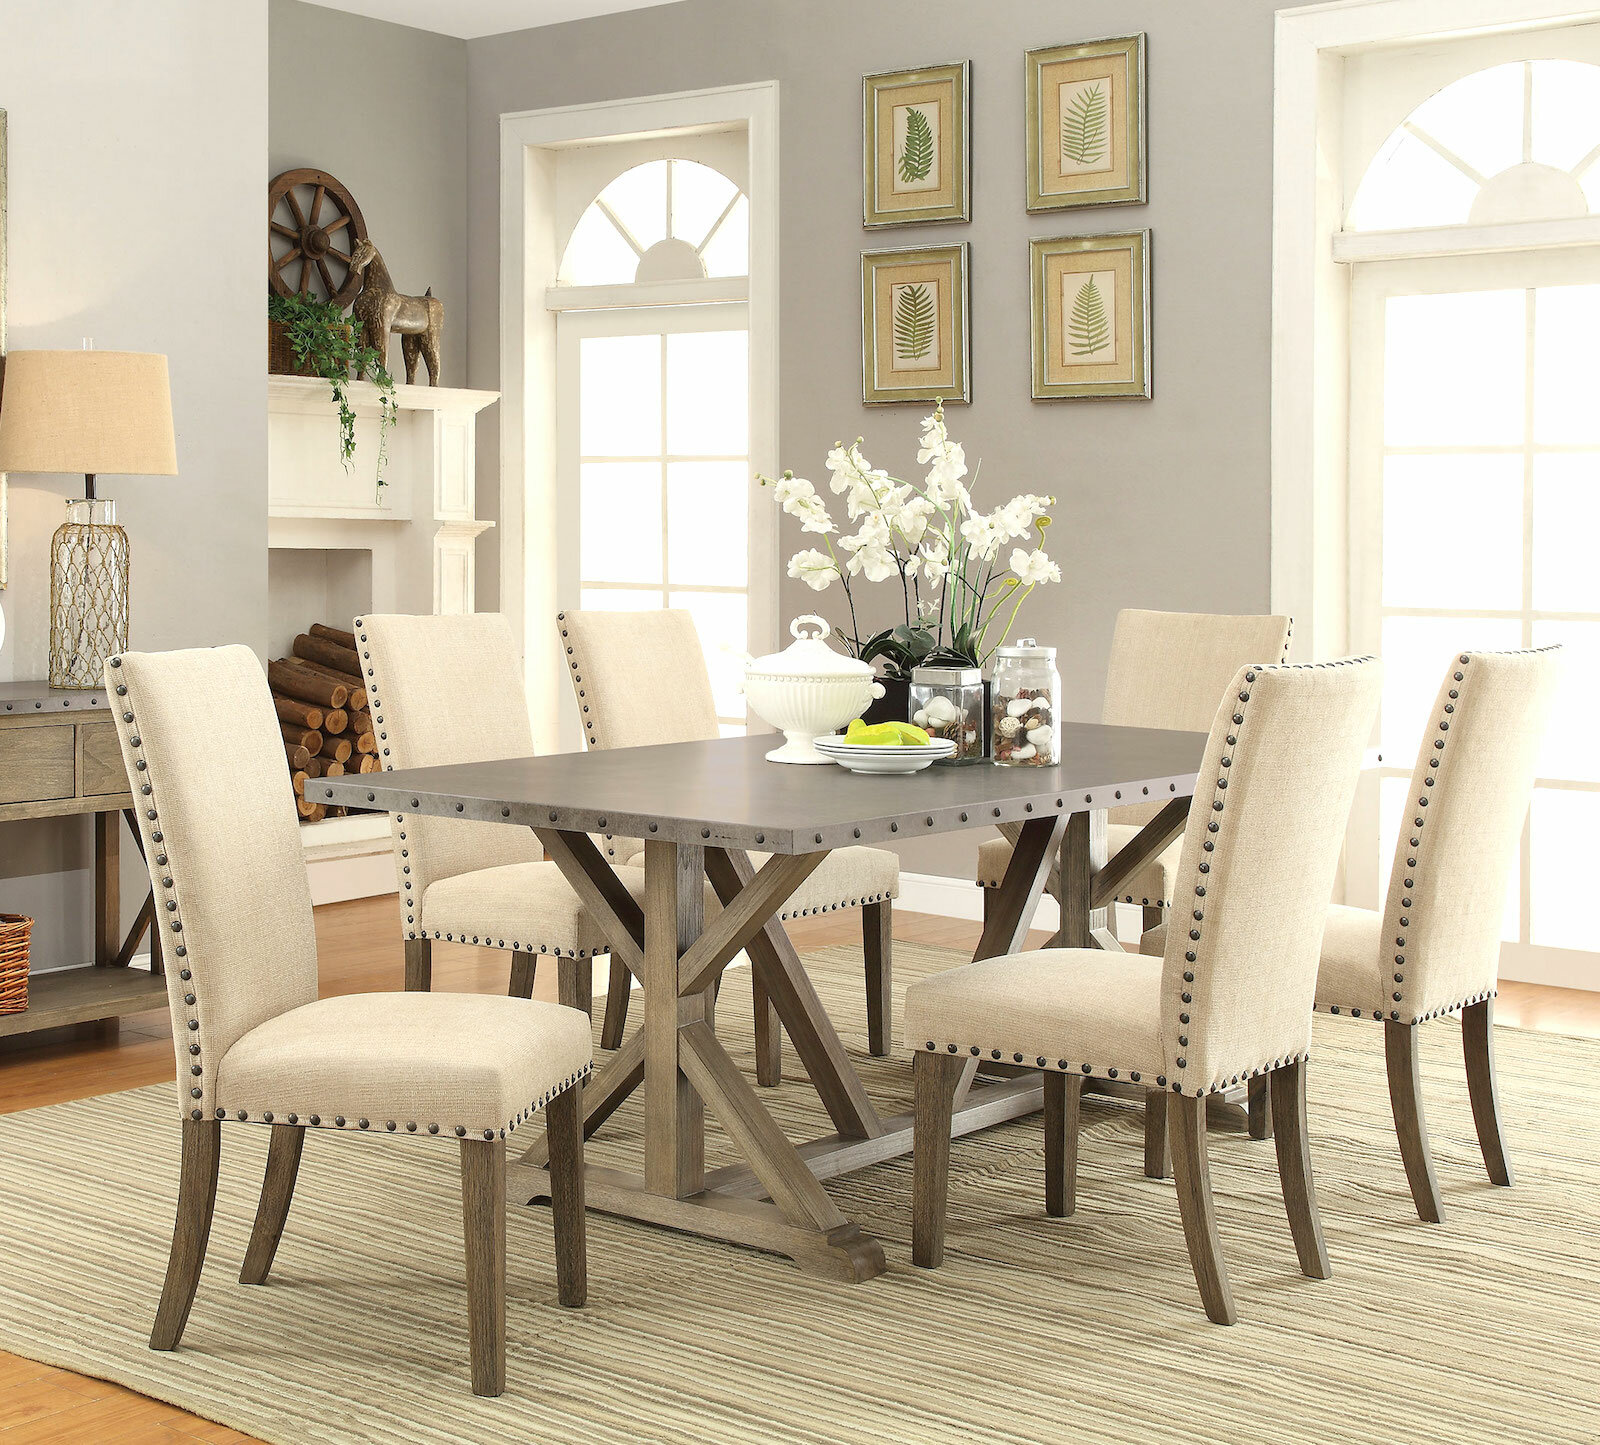 Merveilleux Infini Furnishings Athens 7 Piece Dining Set U0026 Reviews | Wayfair